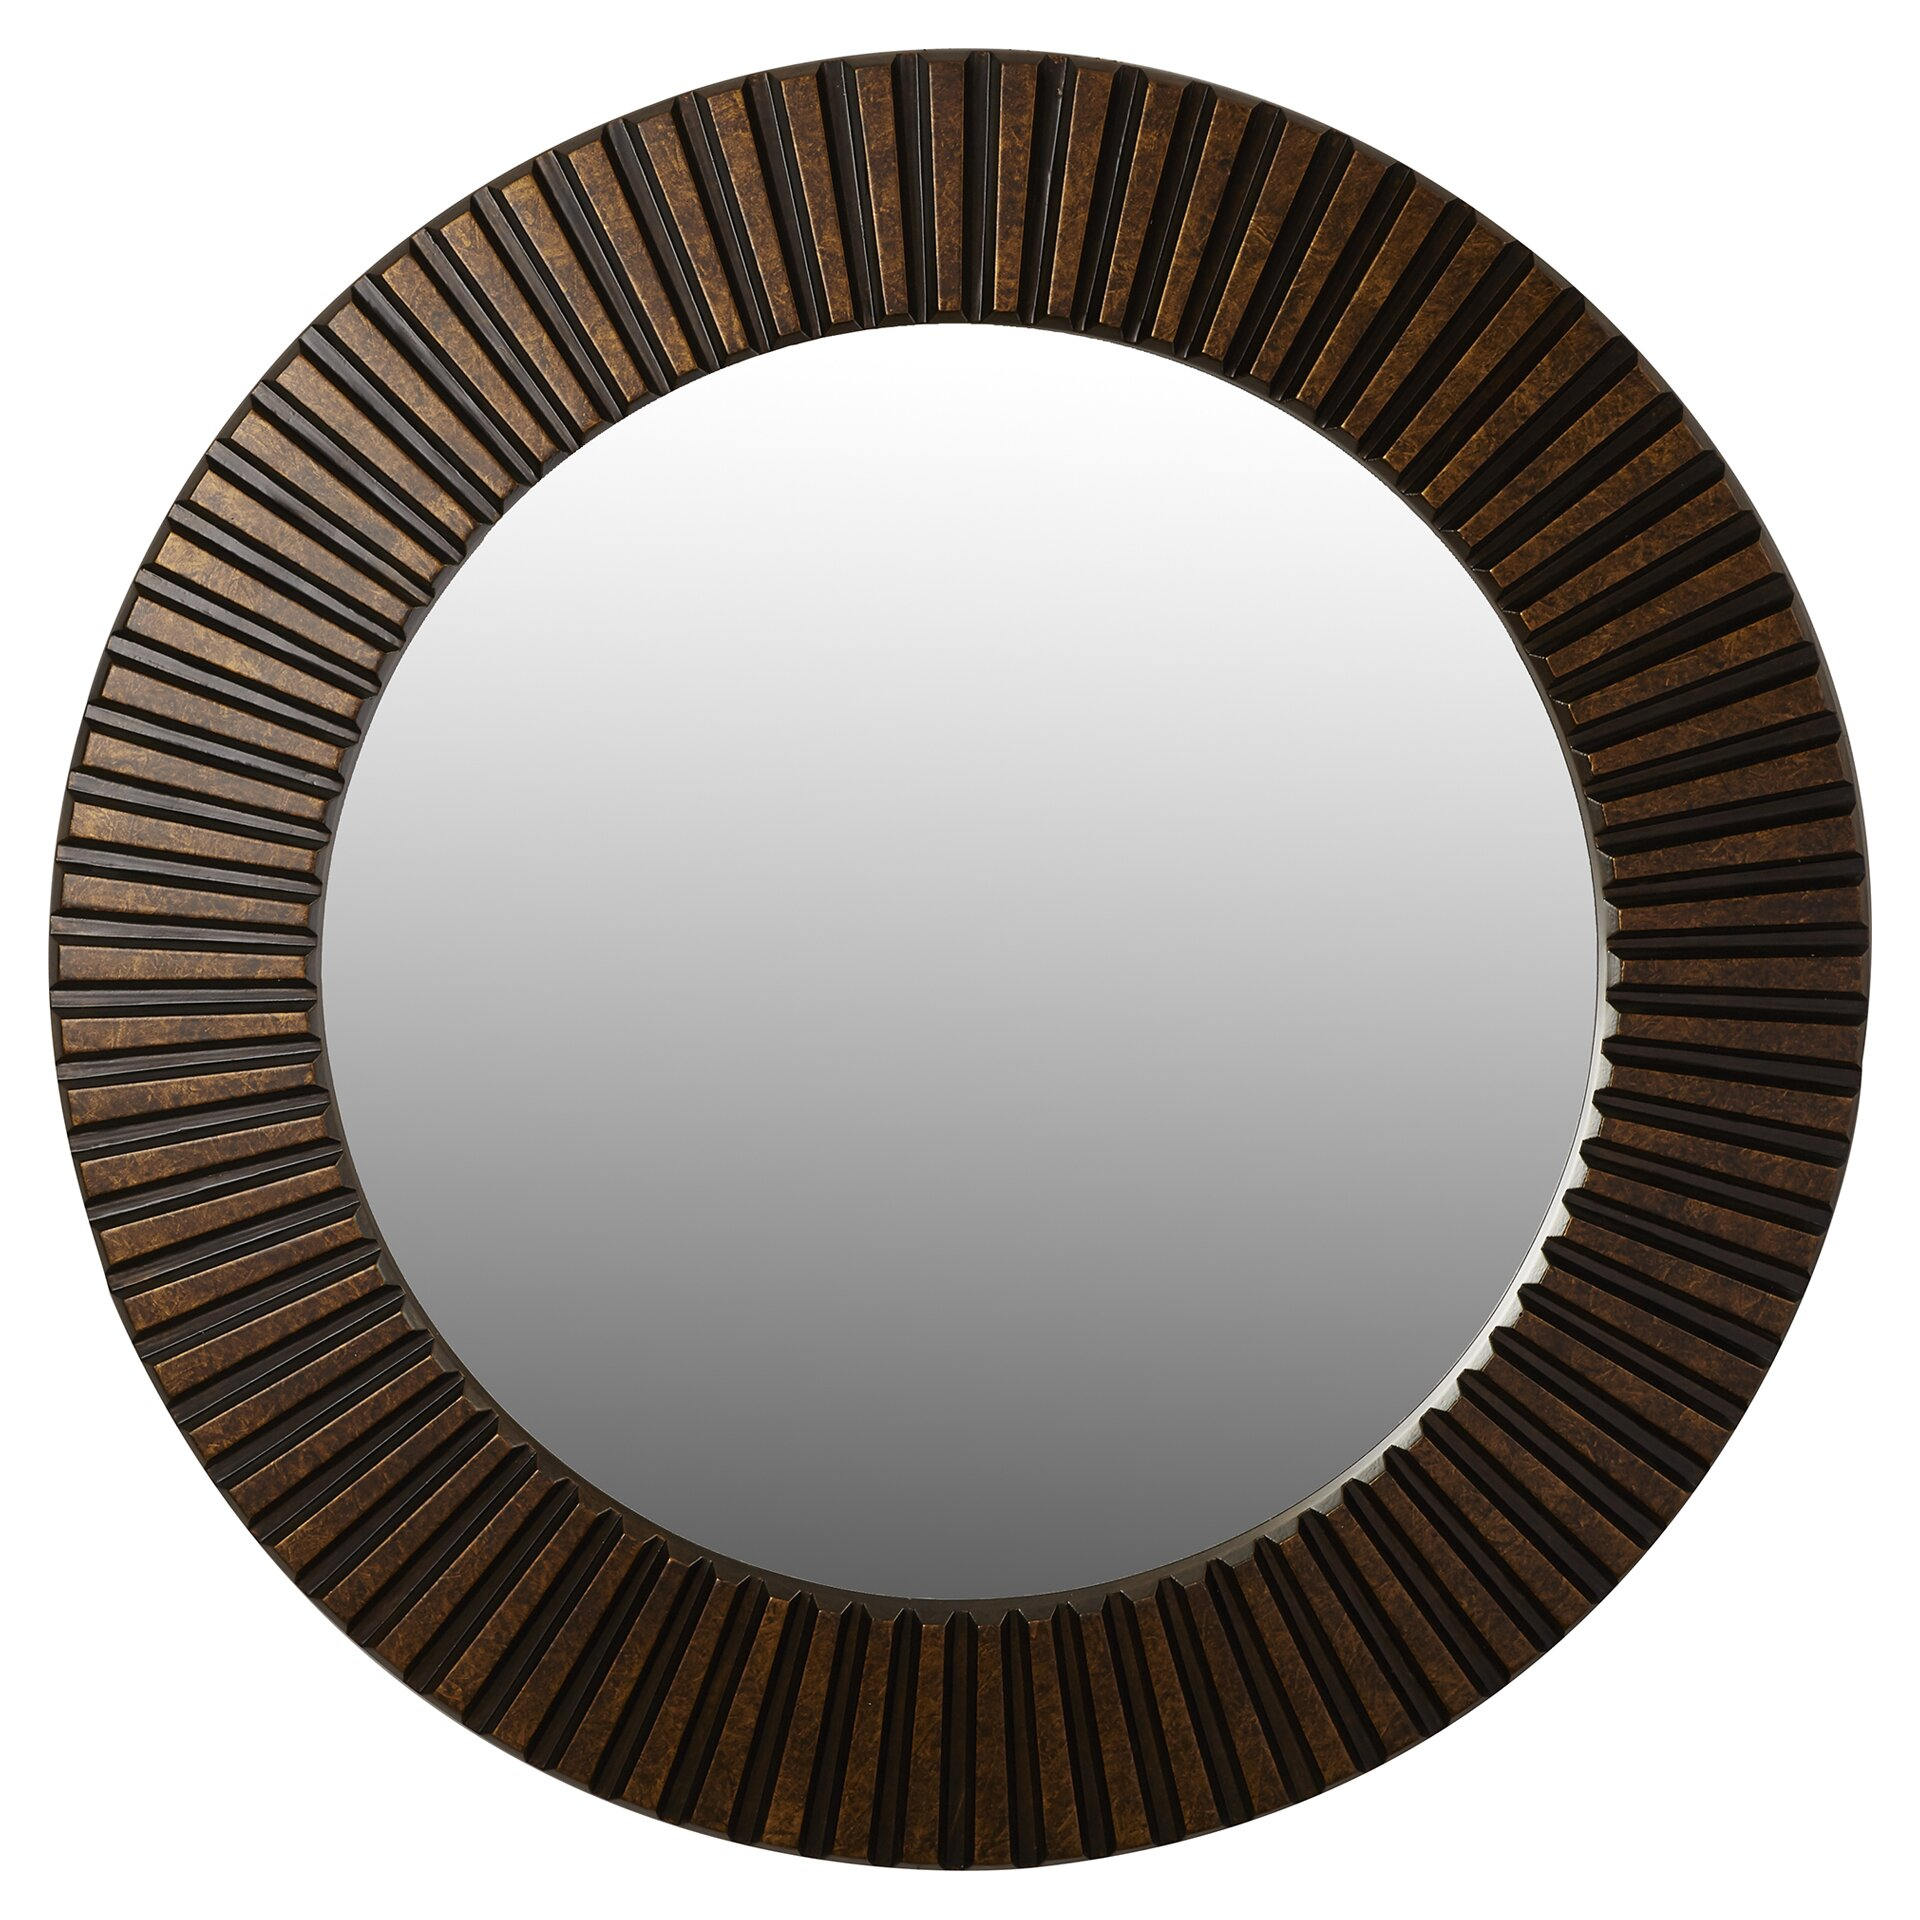 Bungalow rose sneek round wall mirror reviews wayfair for Round mirror